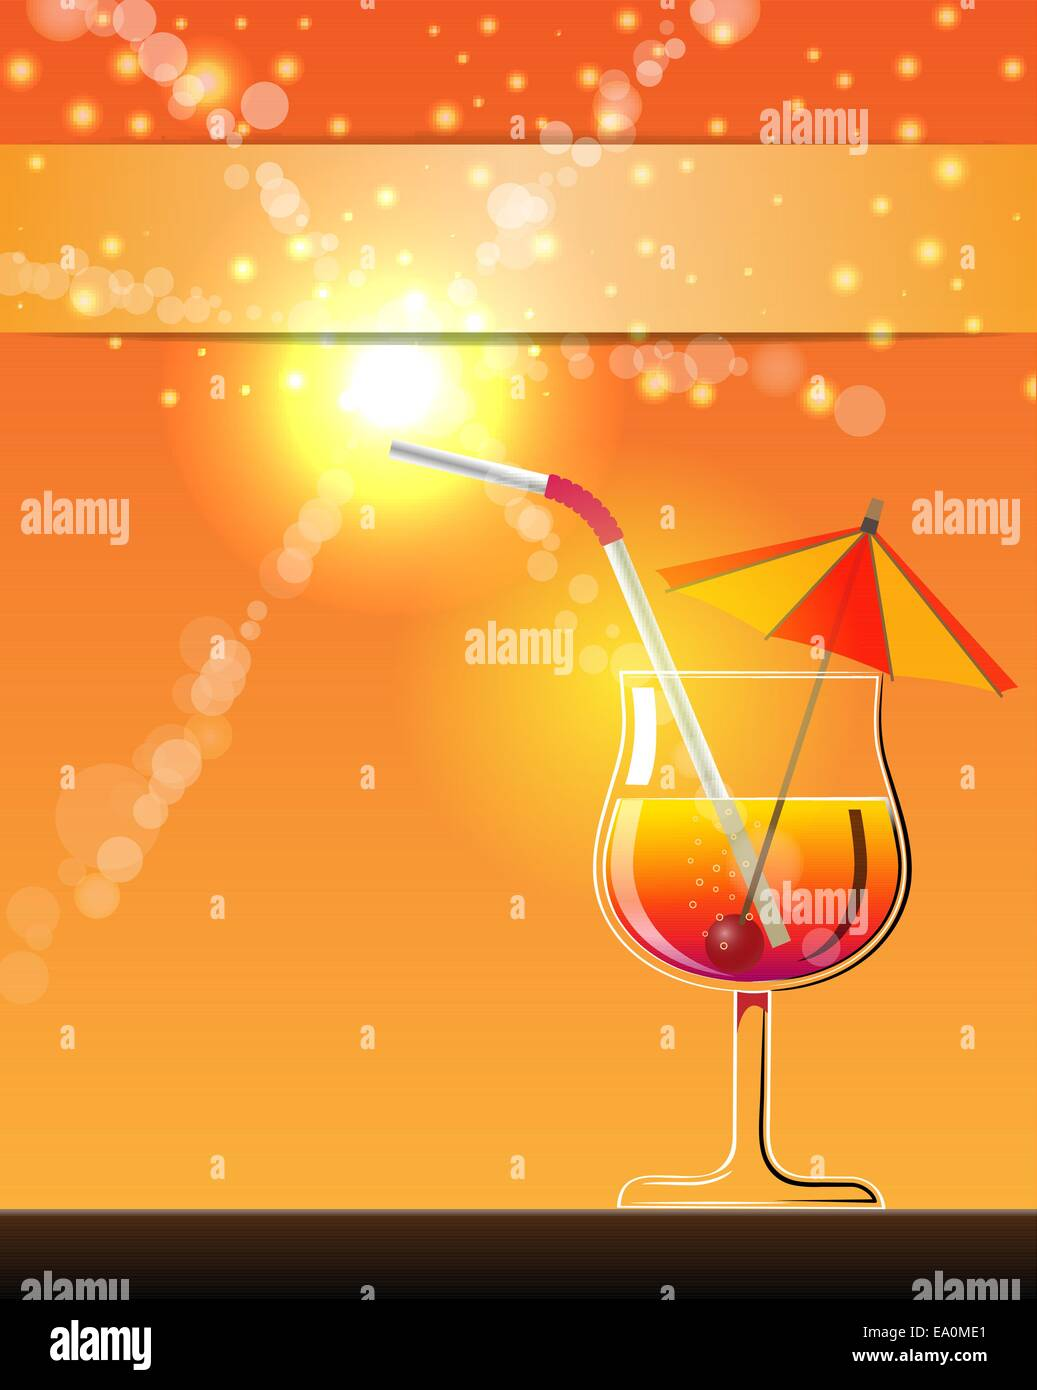 vector hot summer cocktail banner, eps10 file, transparency used - Stock Vector